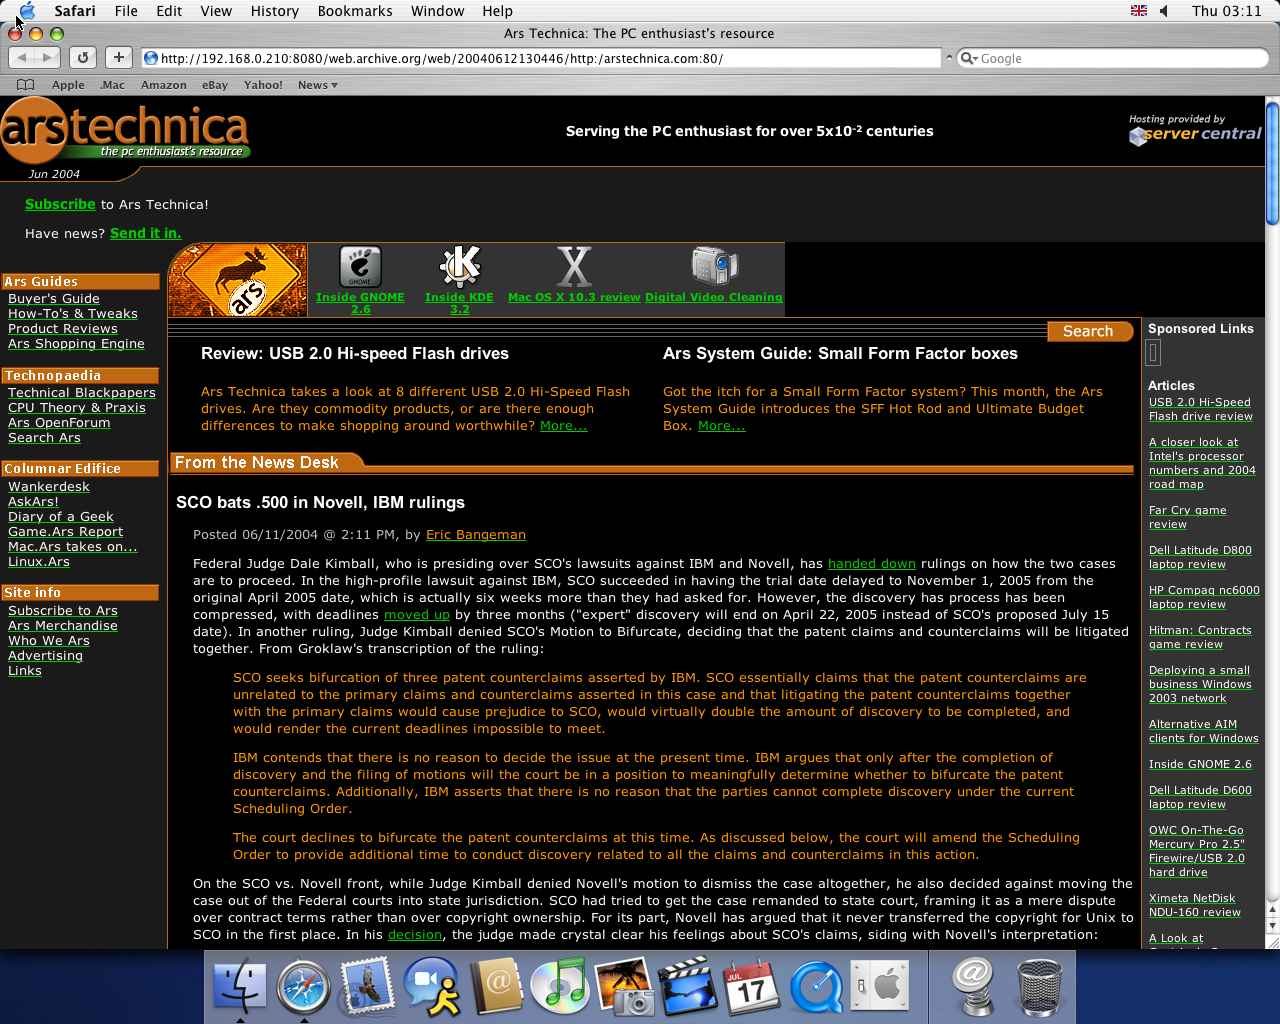 OS X 10.3 PPC with Safari 1.1 displaying a page from Arstechnica.com archived at June 12, 2004 at 13:04:46